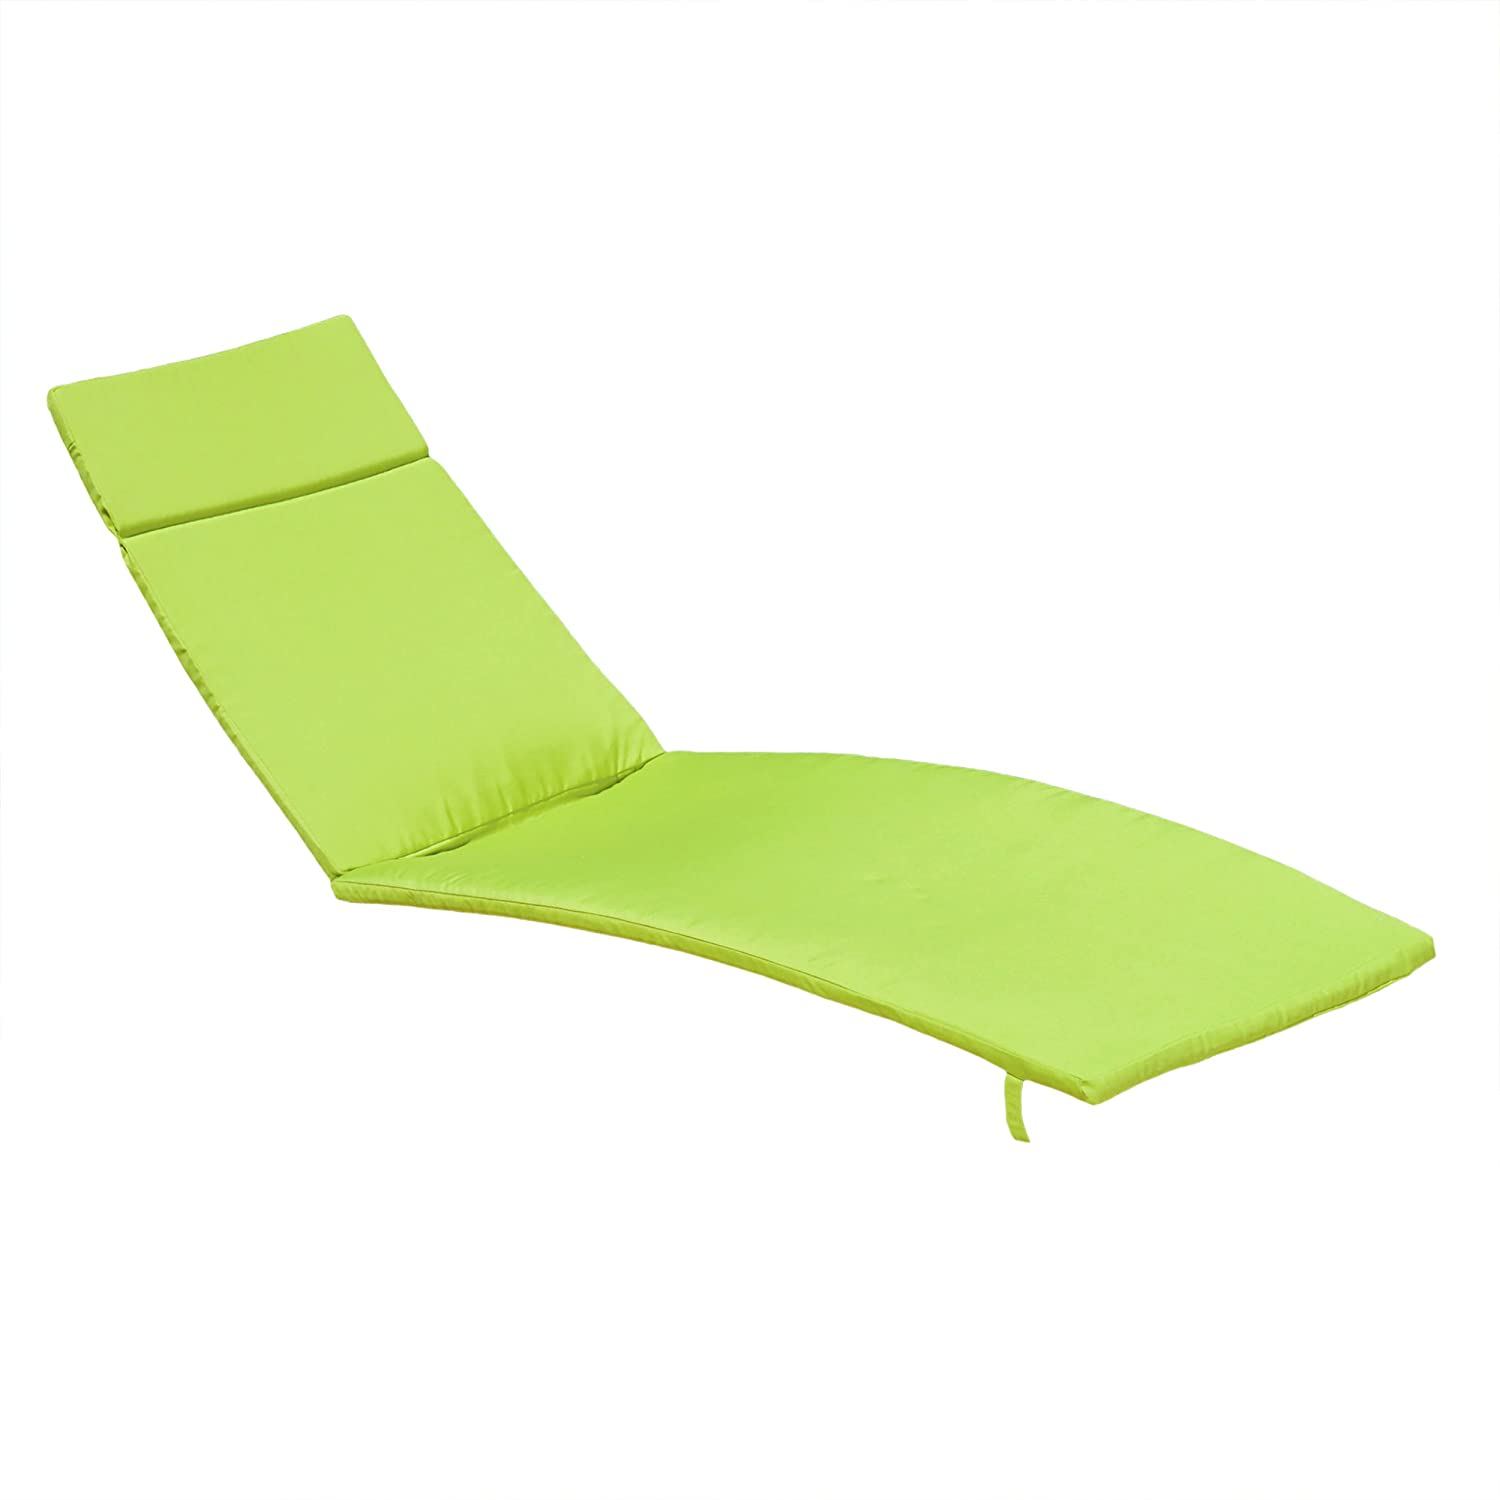 outdoors cheap chaise new of green chair full lounger lounge outdoor awesome sale scheme sun fabulous size lovely furniture white folding for patio walmart small chairs